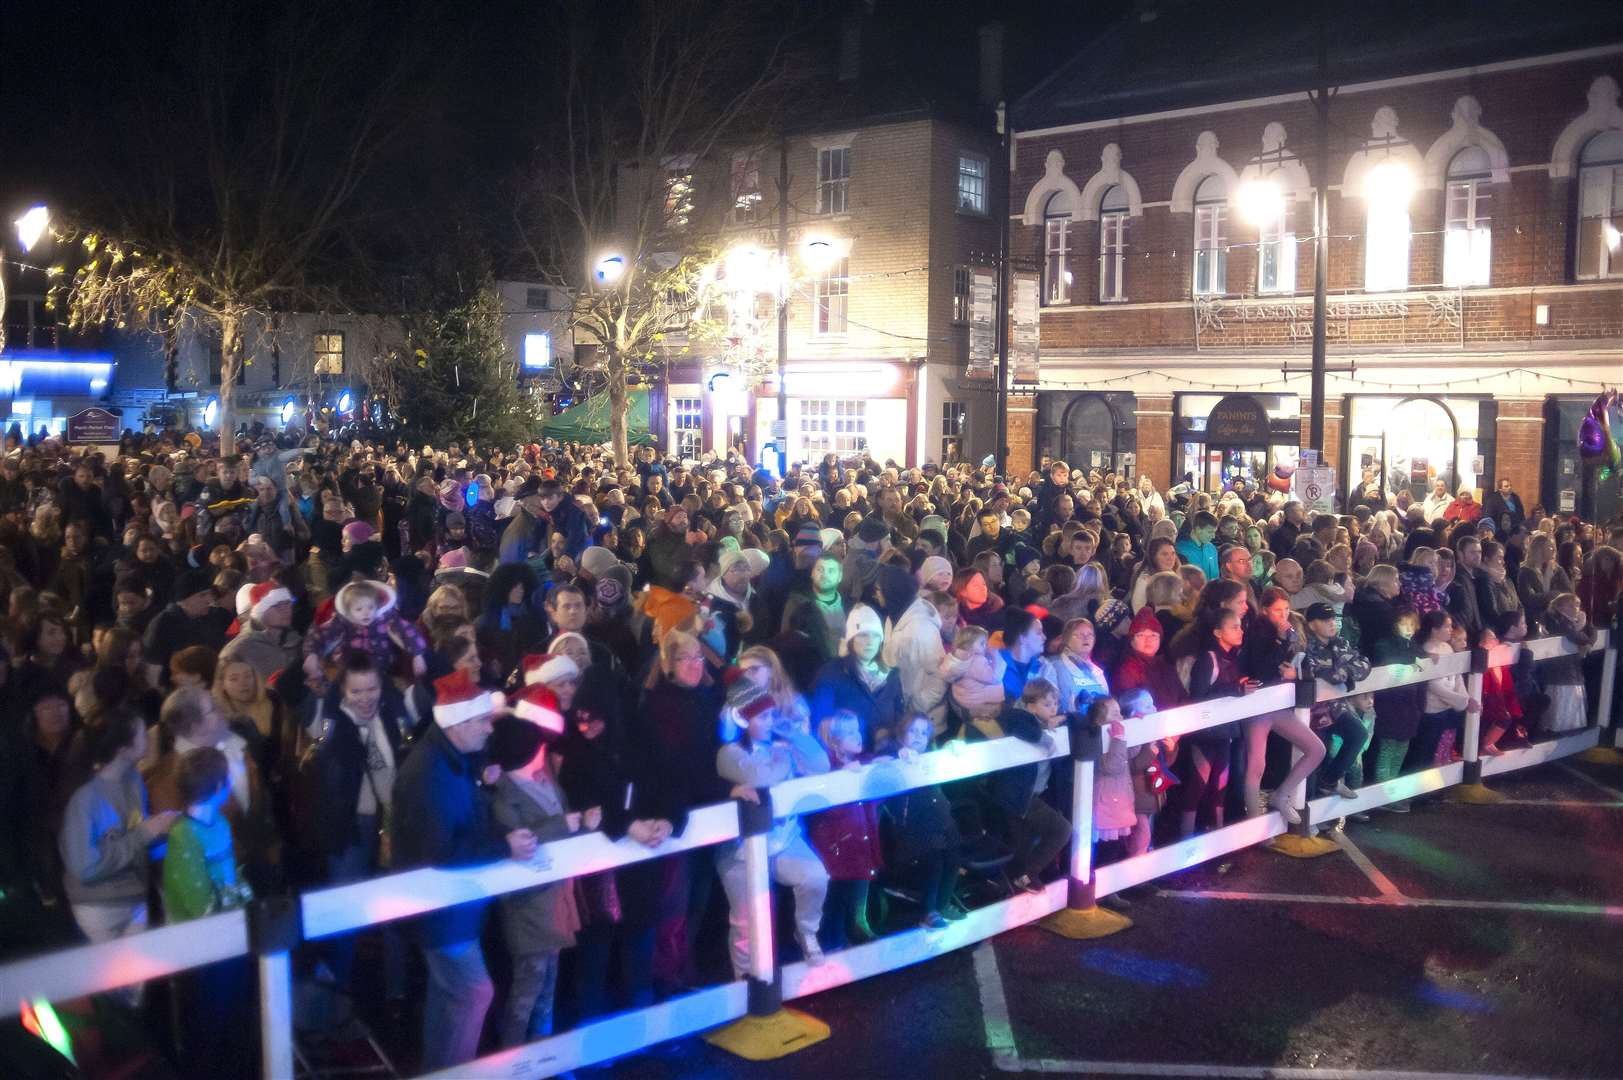 March Town Annual Christmas Lights Switch on. (22957088)